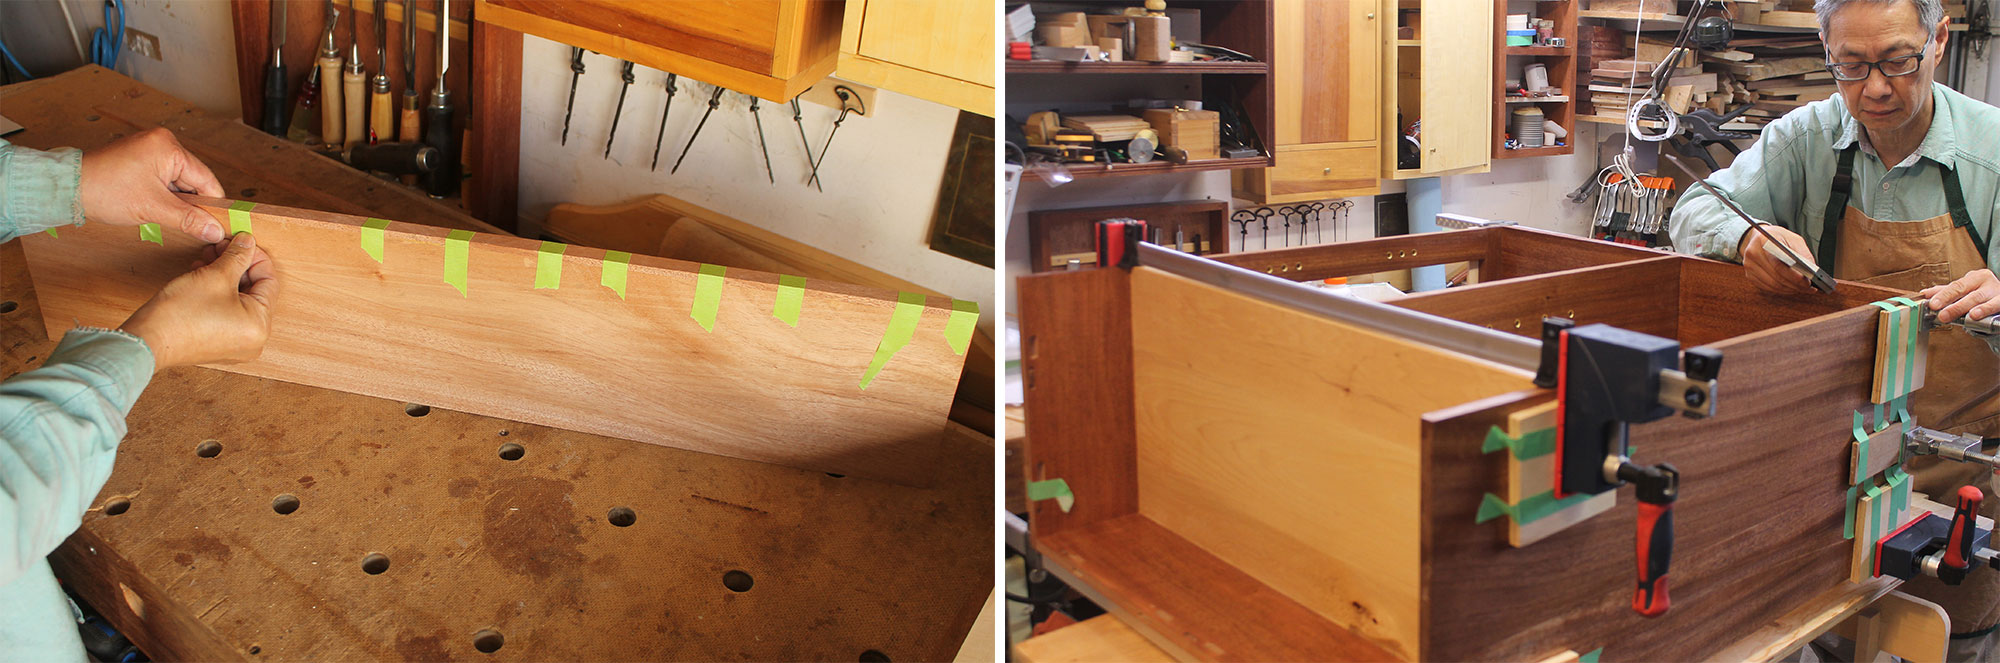 Left: Using tape for a small clamping task. Right: Using tape to hold pads in position.